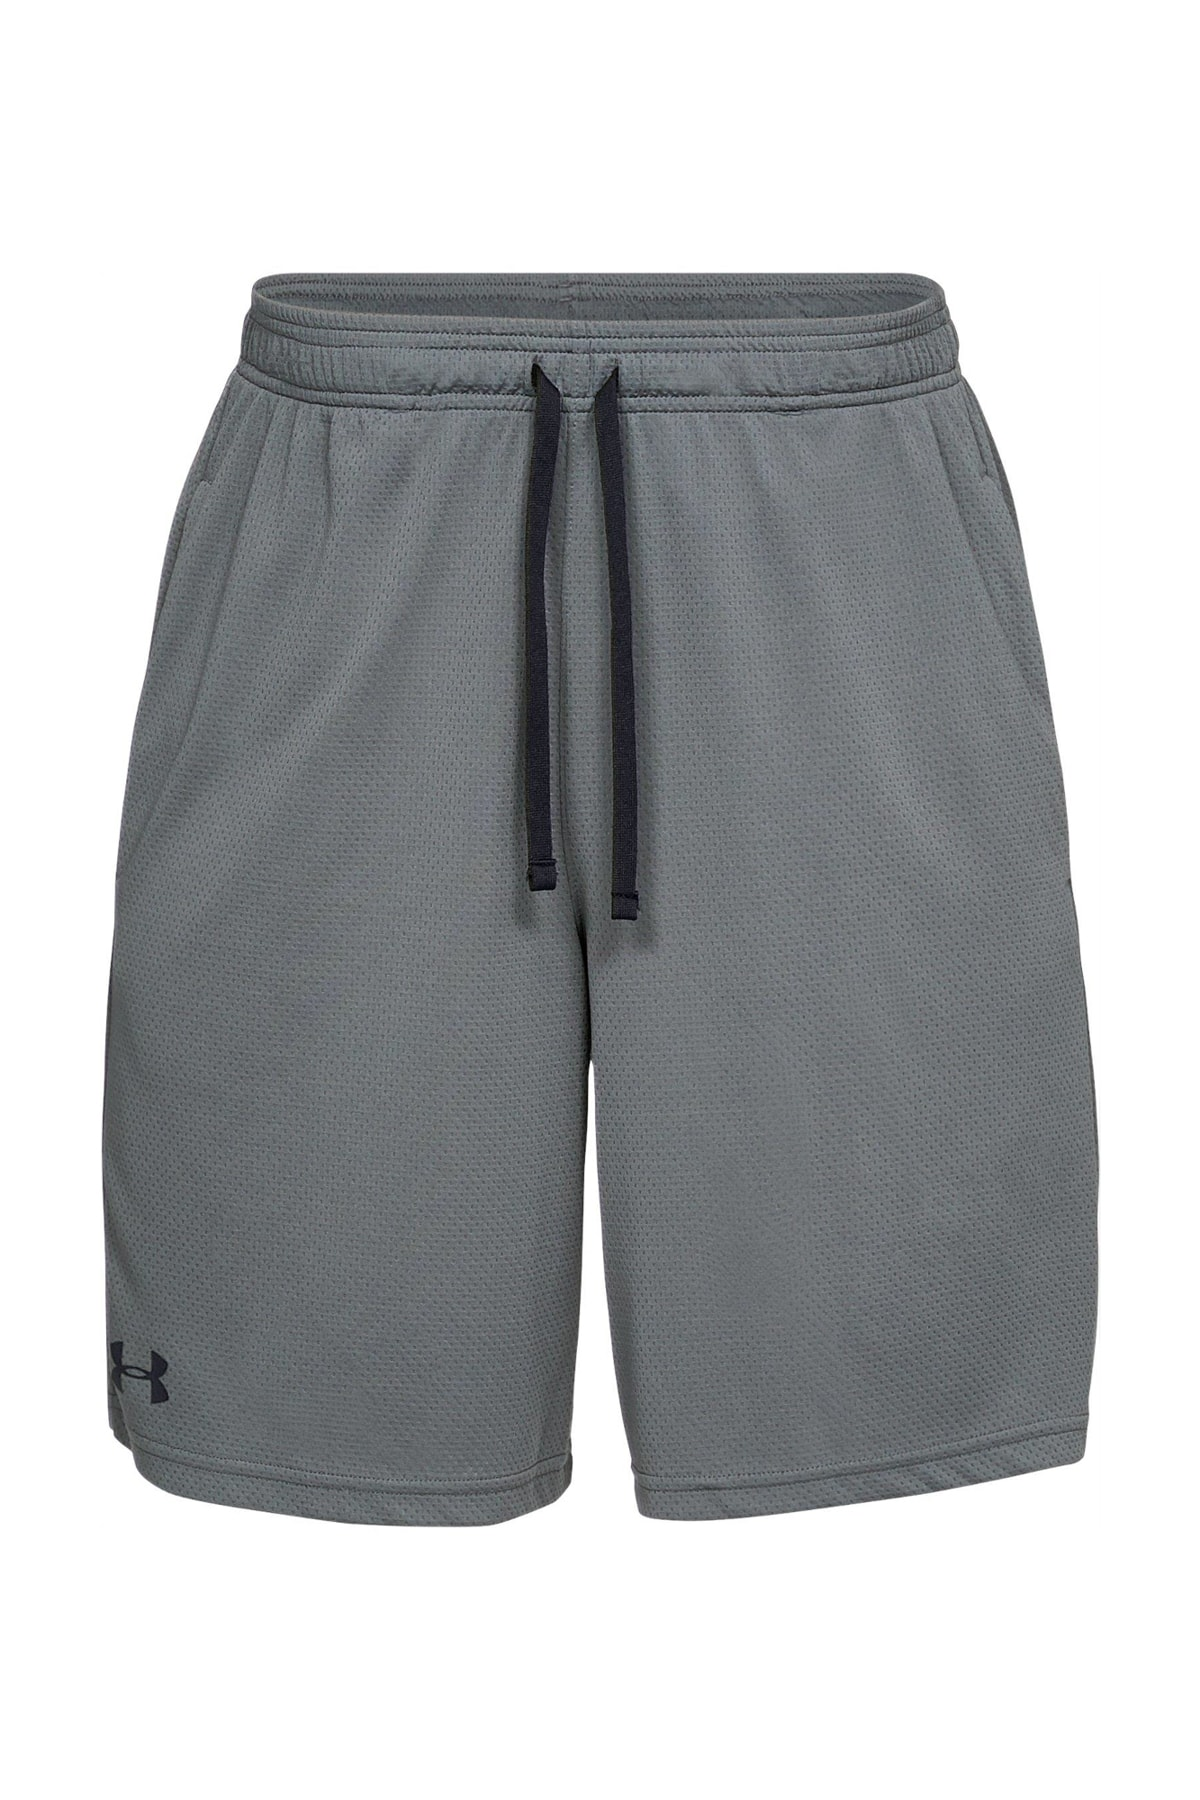 Under Armour Erkek Spor Şort - UA Tech Mesh Short - 1328705-012 1